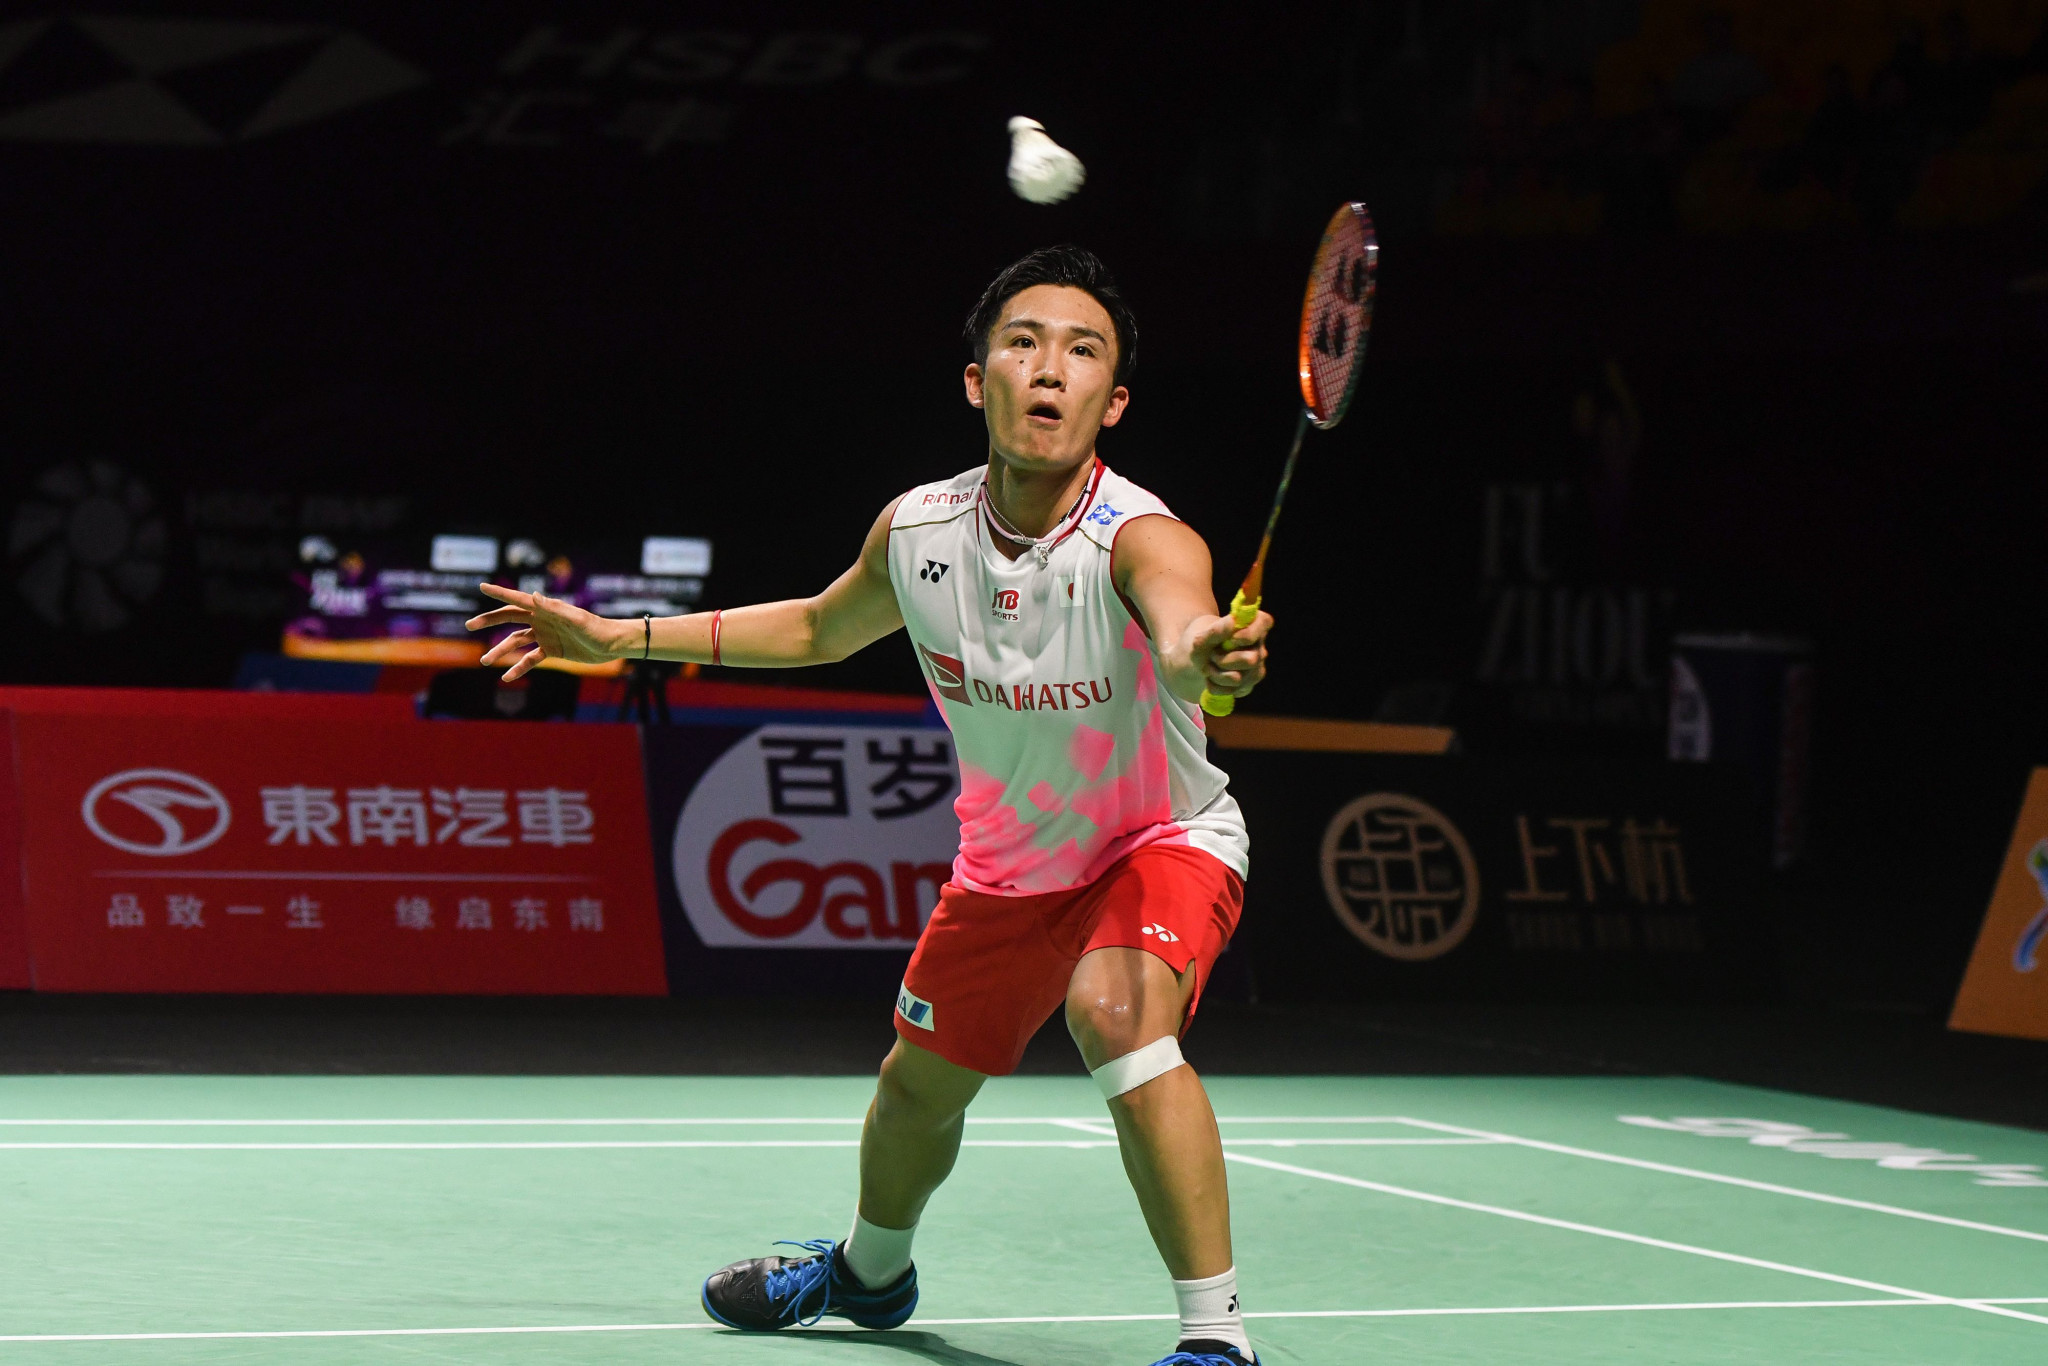 Kento Momota advanced to the men's singles final ©Getty Images